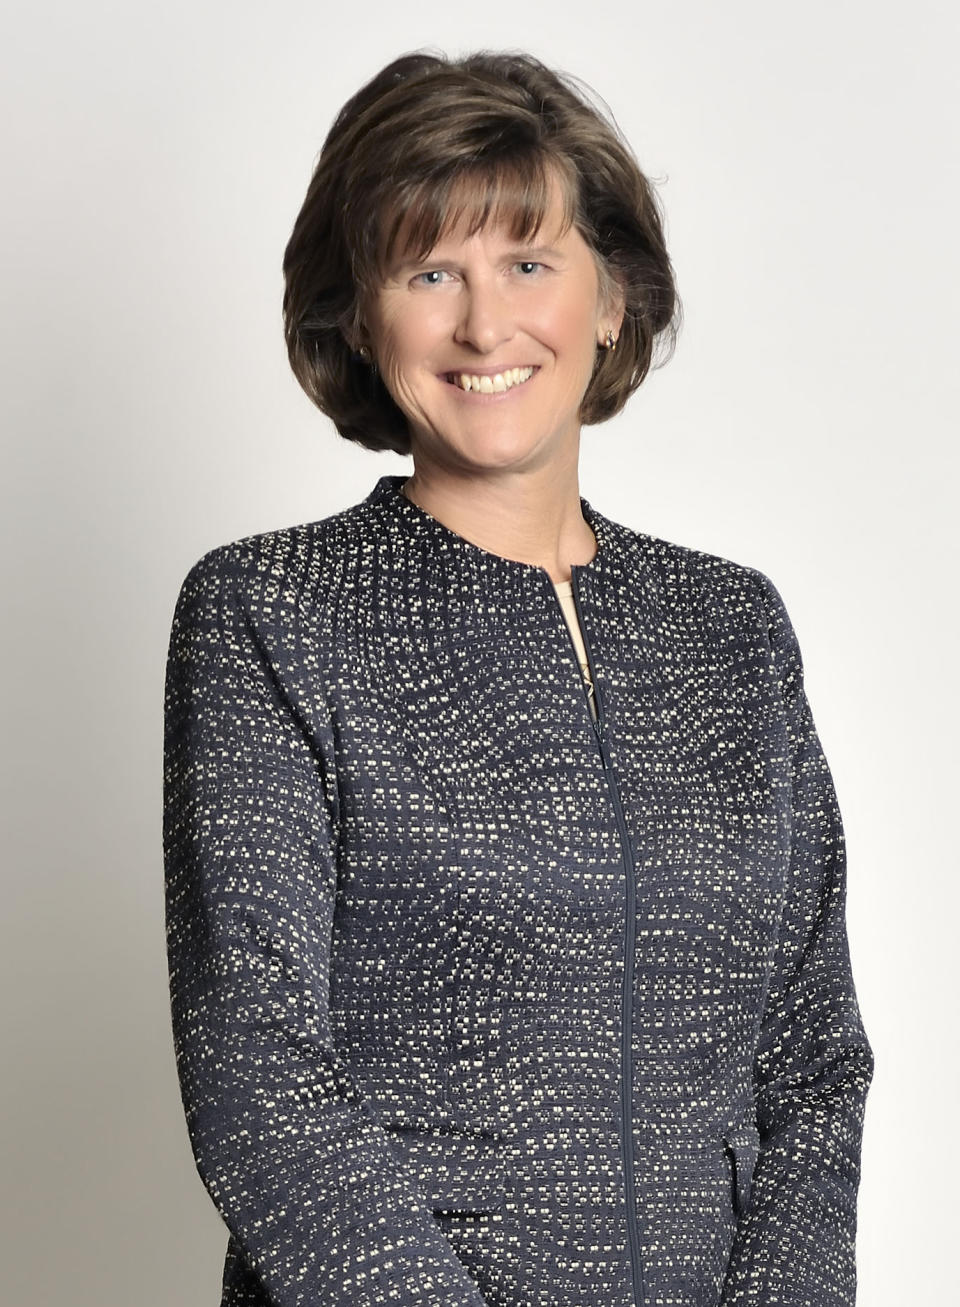 Jeanne Johns, female managing director of Incitec Pivot. (Photo: Supplied)